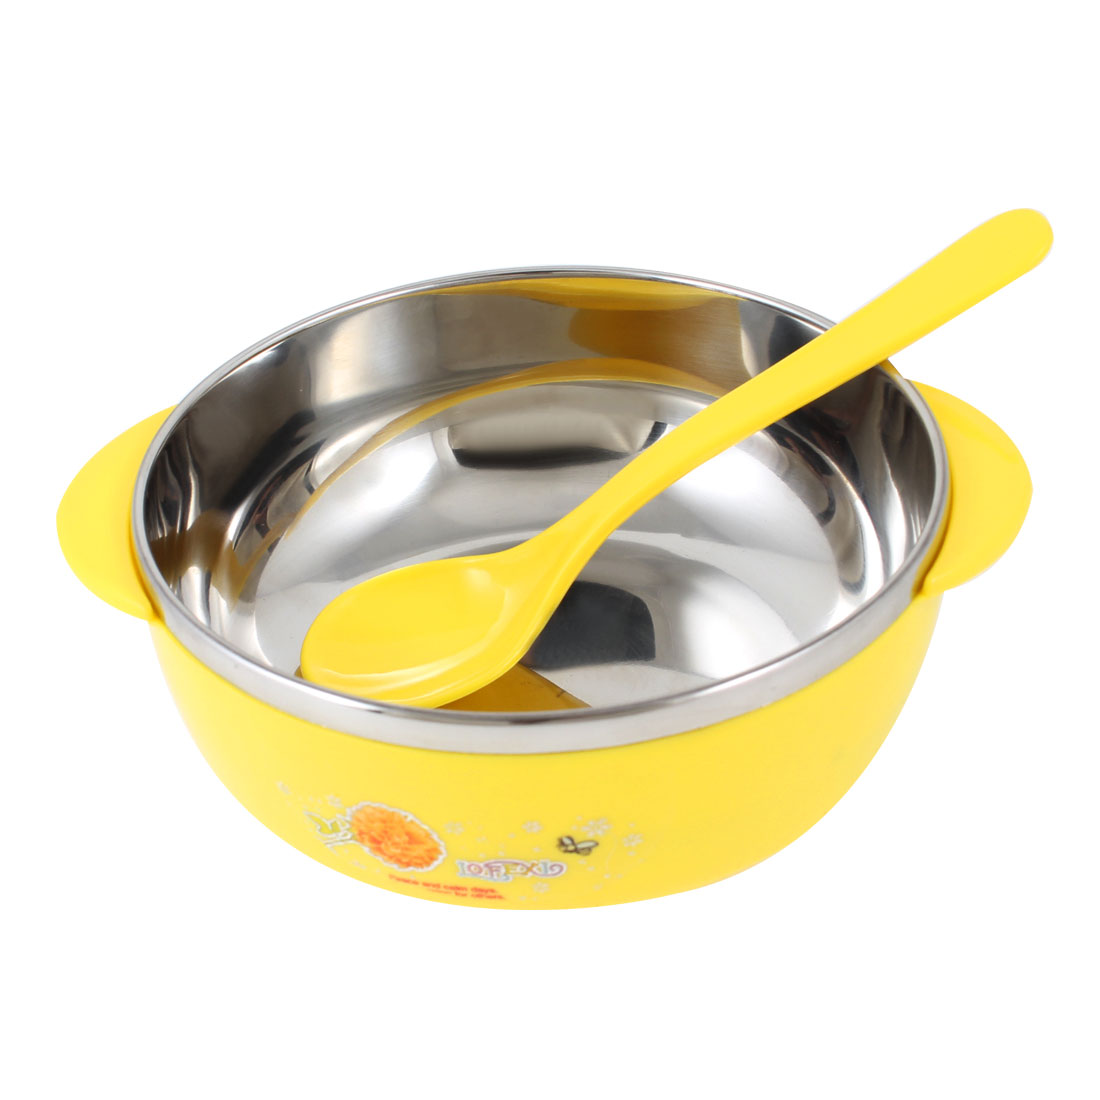 Home Kitchen Plastic Coated Stainless Steel Dinner Rice Bowl